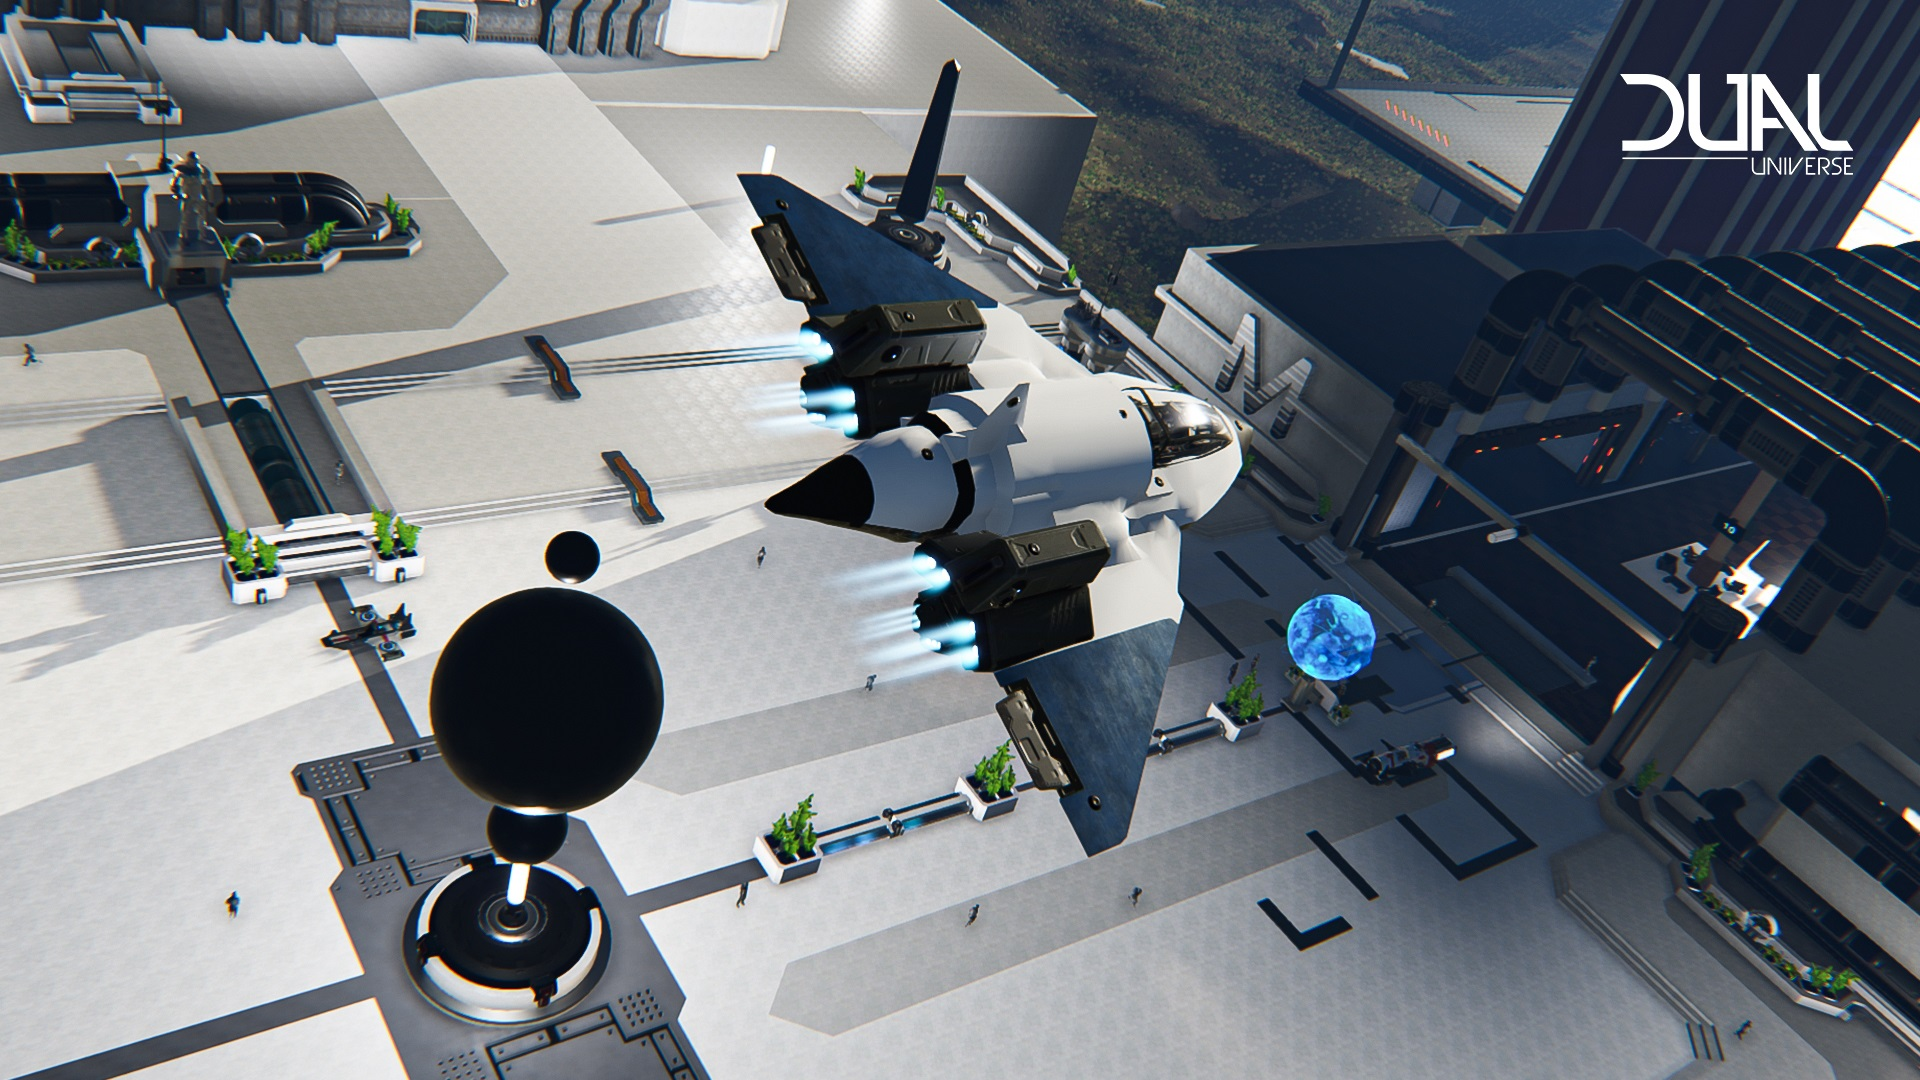 Contest: Win three months of beta access to Dual Universe screenshot